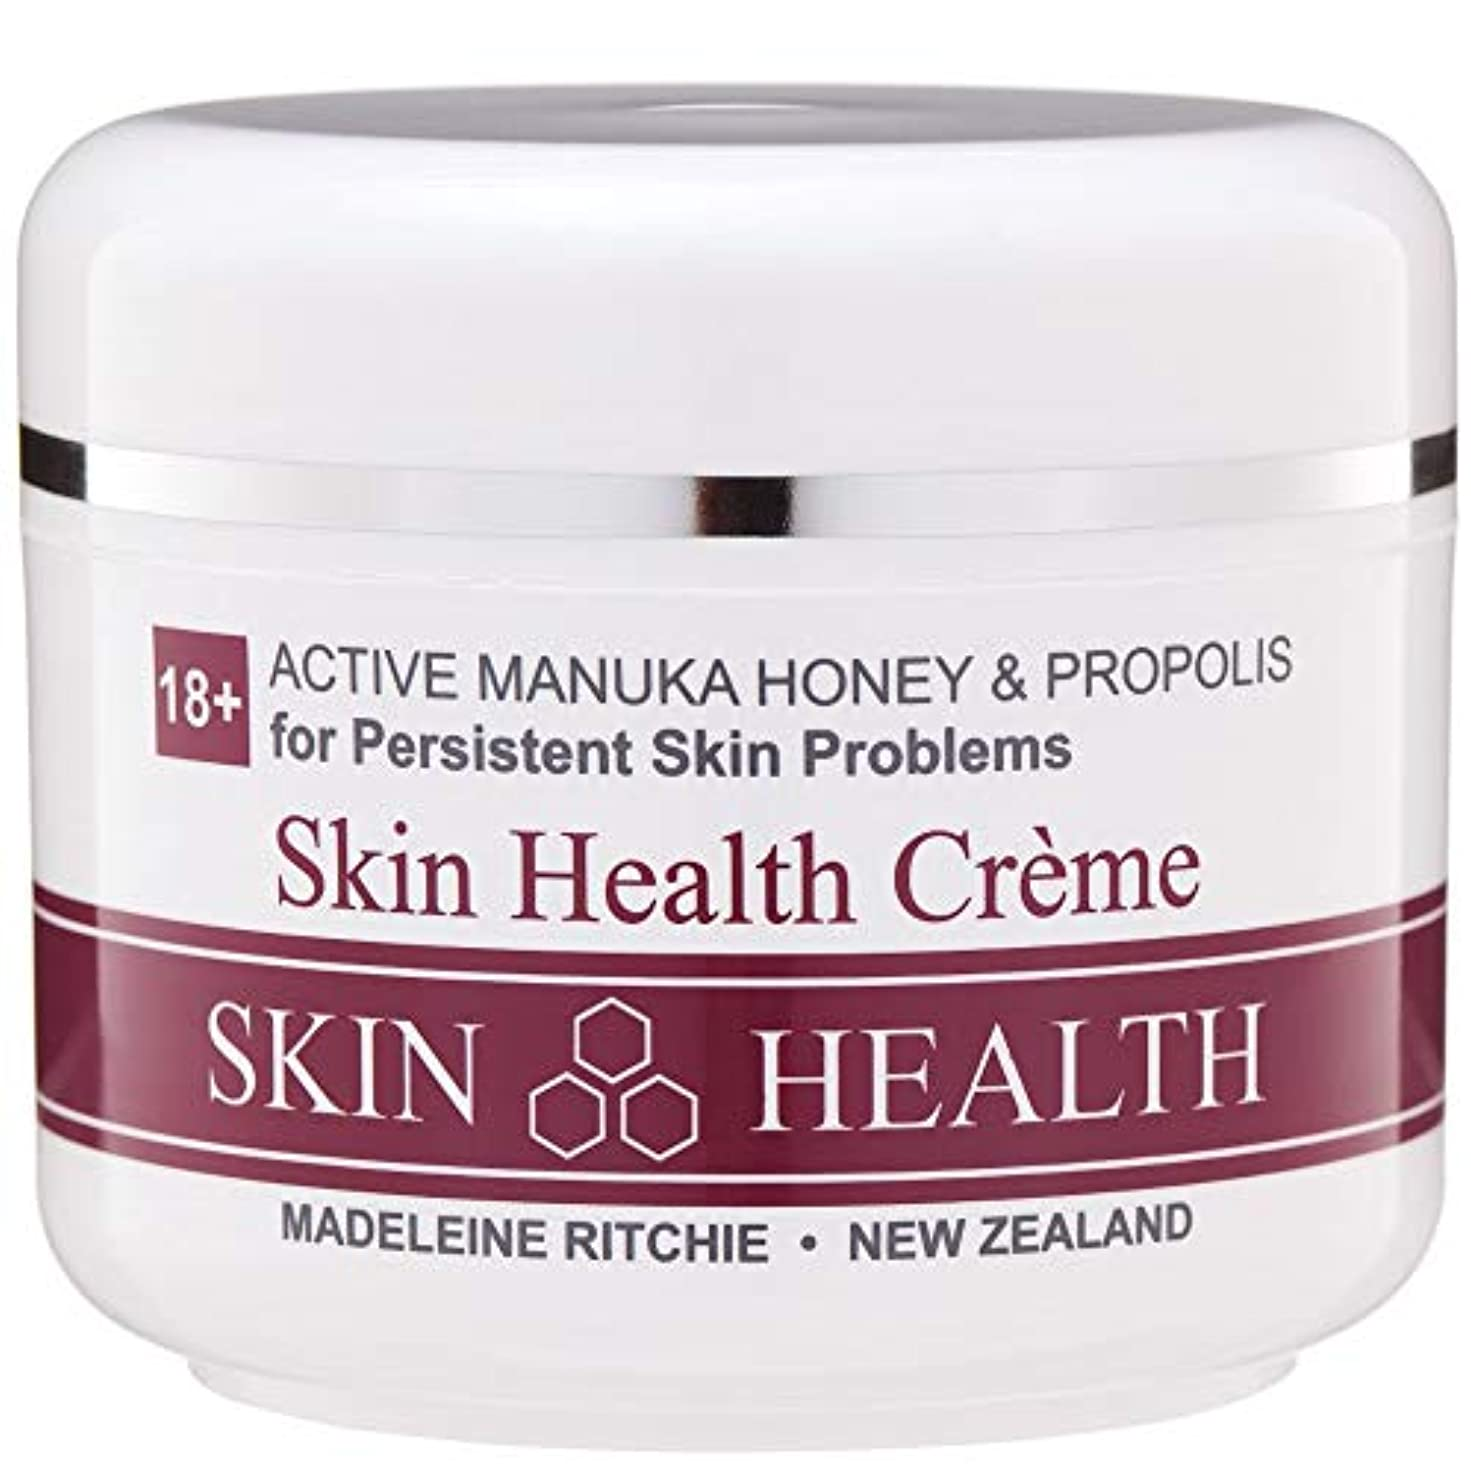 資本幽霊ウォルターカニンガムMadeleine Ritchie New Zealand 18+ Active Manuka Honey Skin Health Cream Jar 100ml